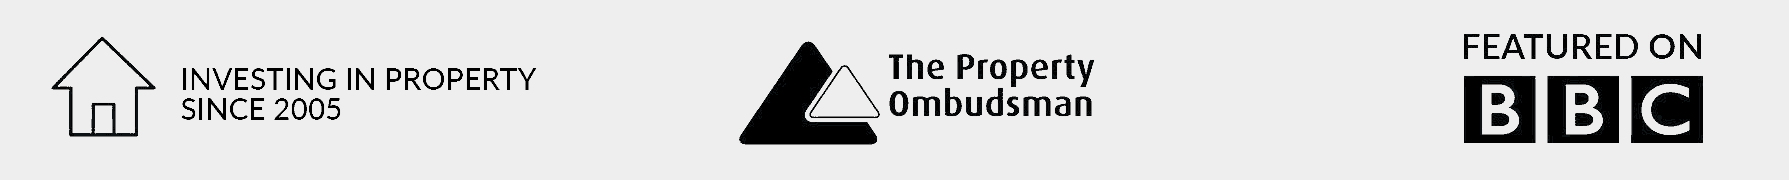 Investing in property since 2005. Member of the Property Ombudsman. Featured on the BBC